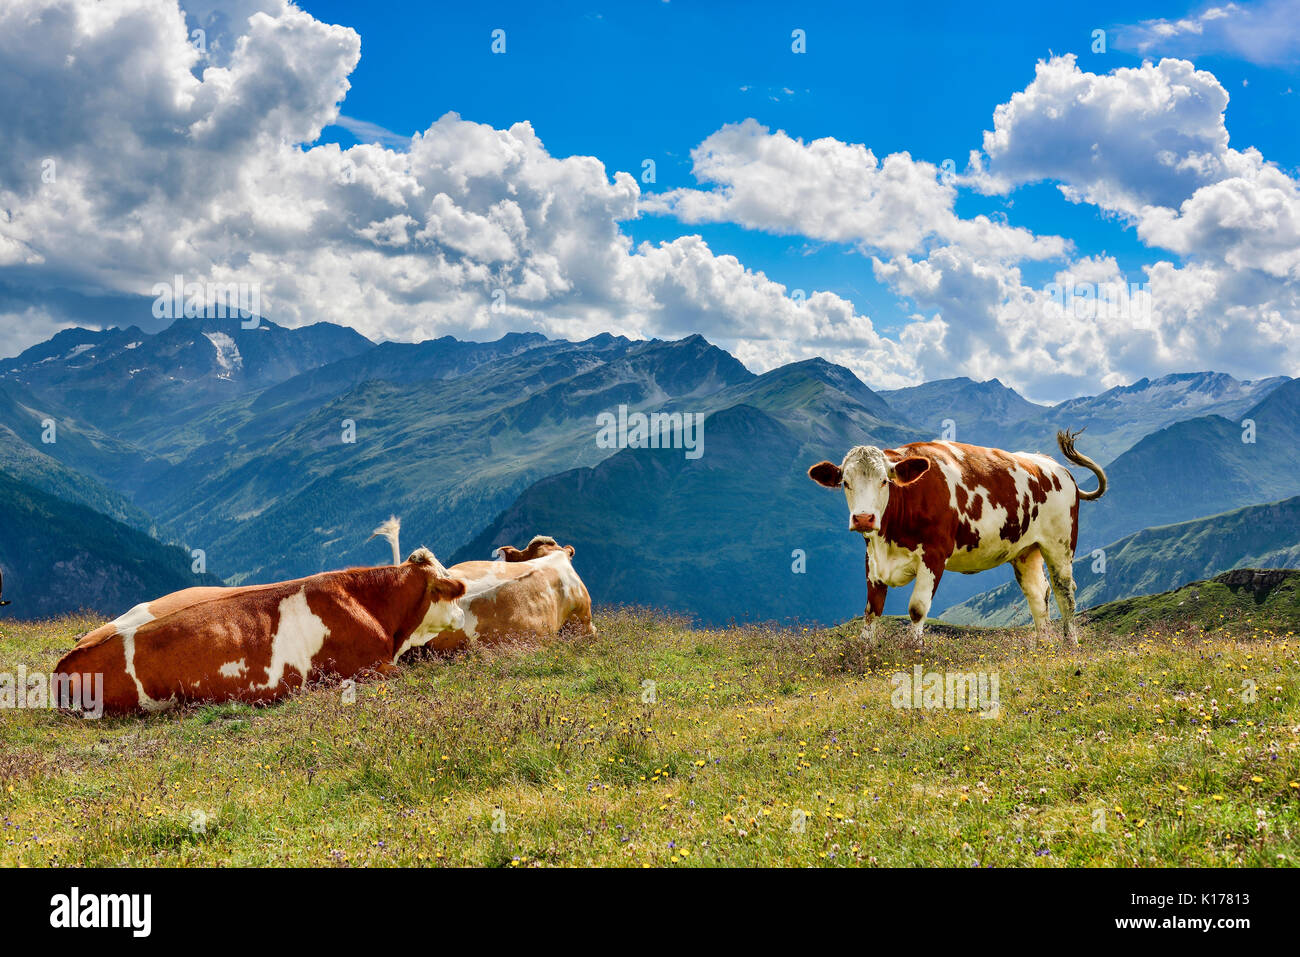 Alp Cows on the pasture - Stock Image